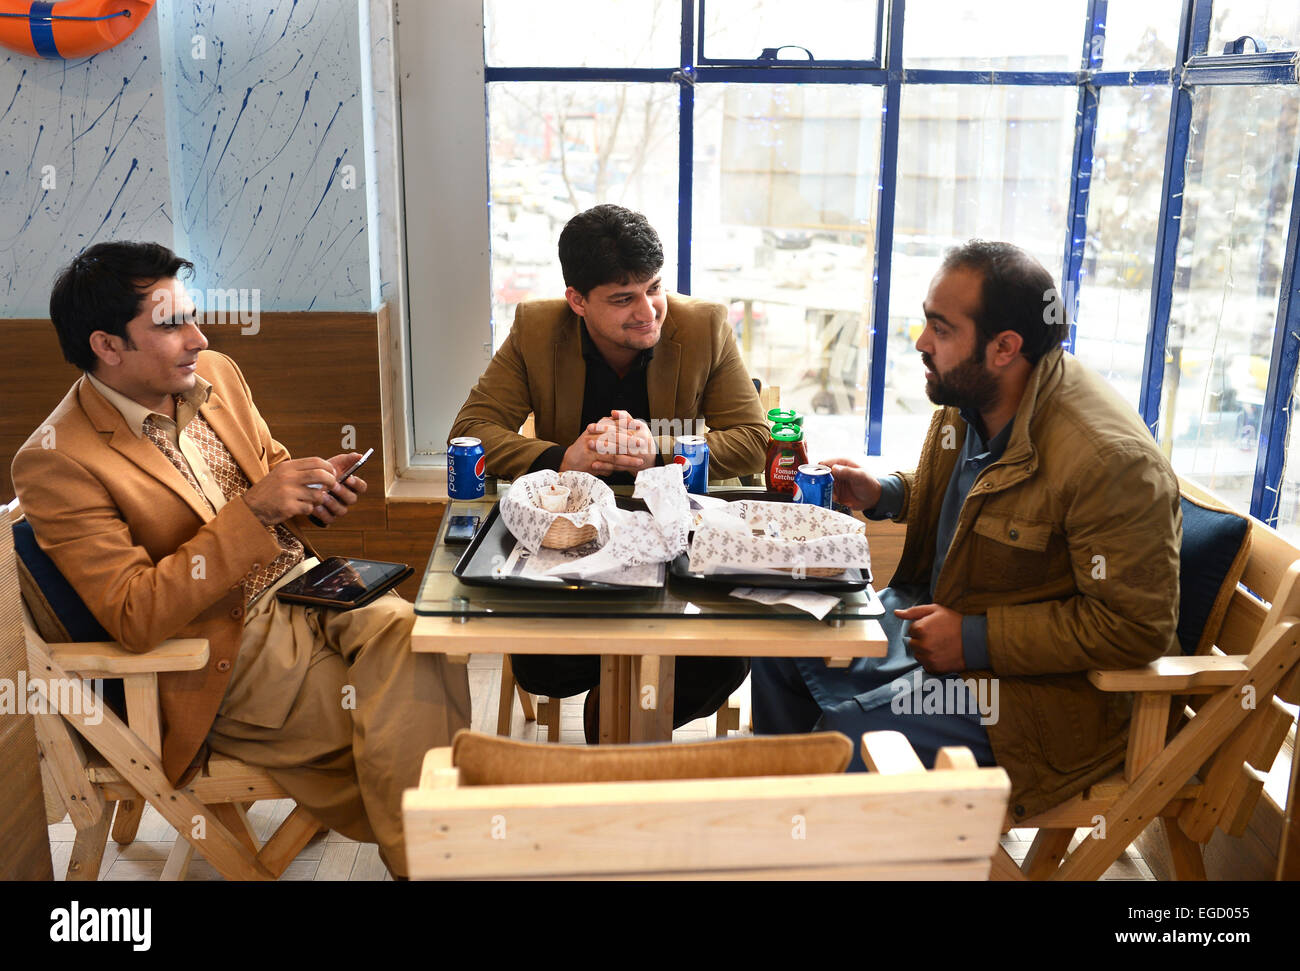 Afghan auditor at a ministry Ahmad Shah Ahmadzai (first from right) eating fish and chips with his friends at the - Stock Image